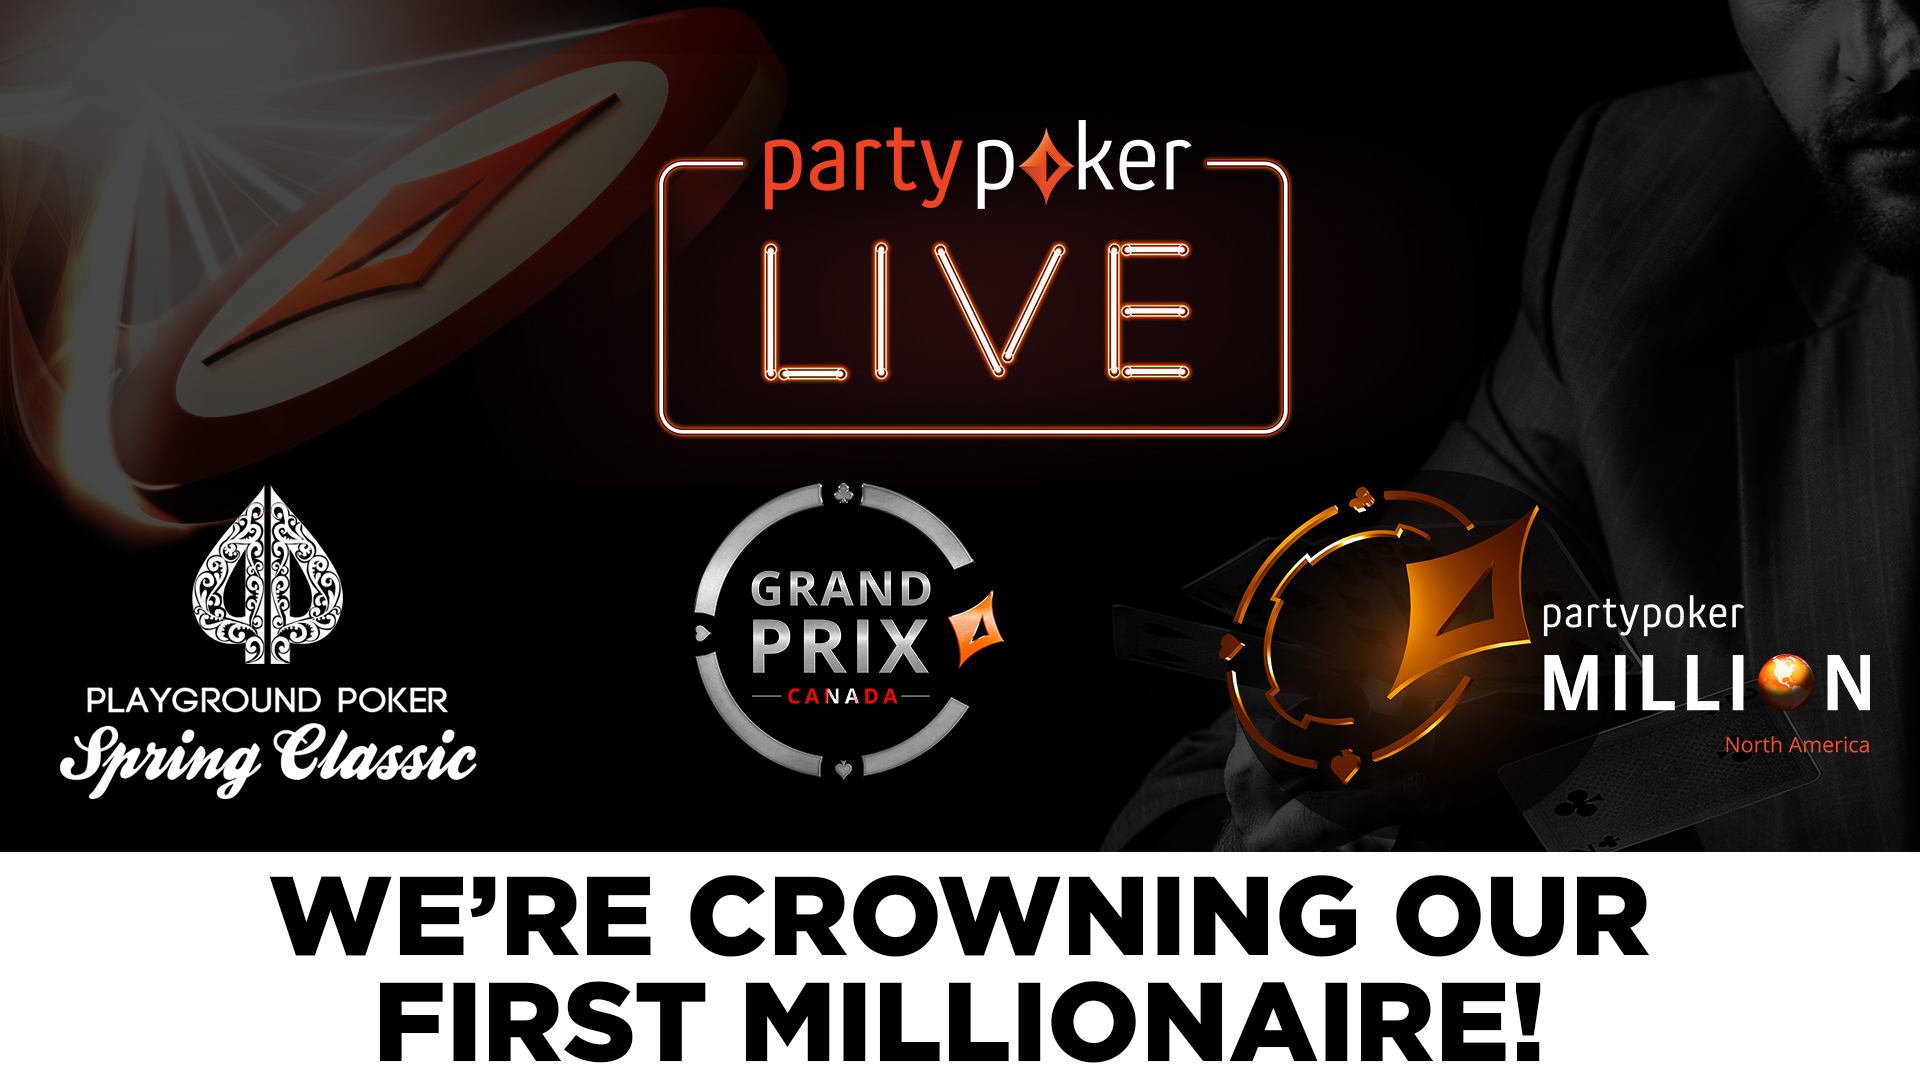 Playground to Crown its first Millionaire!